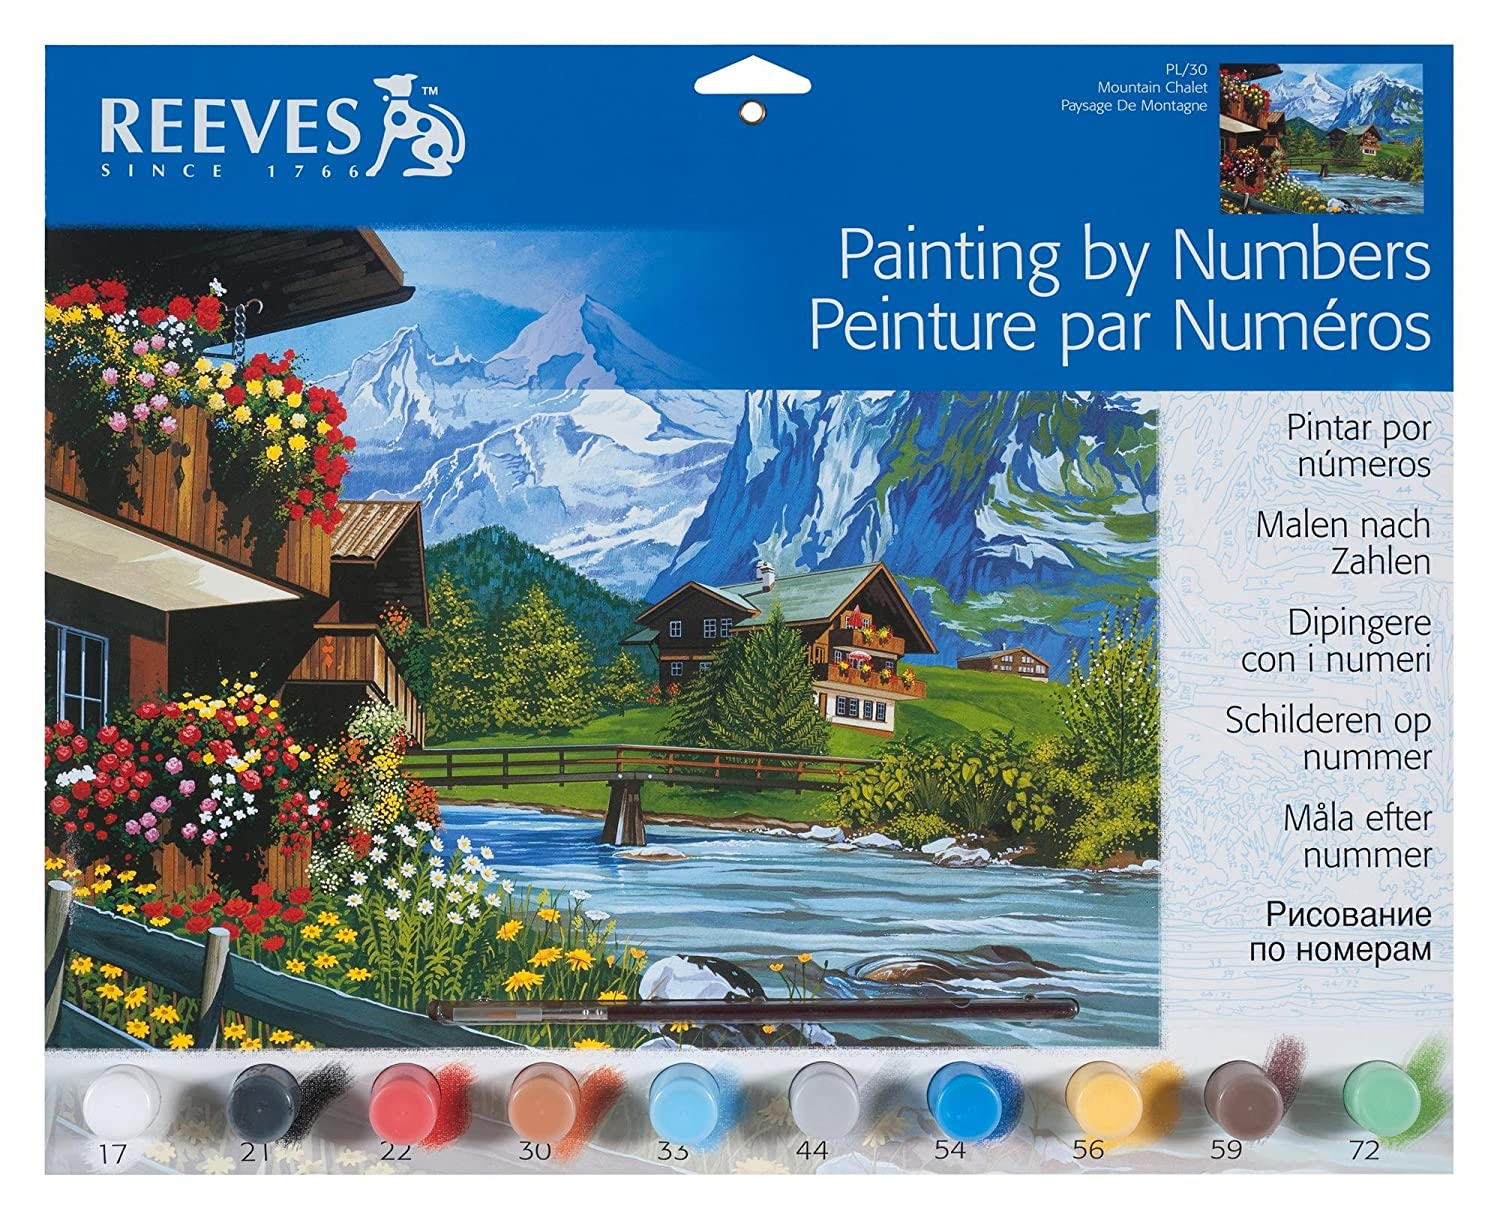 Amazon.com: Reeves Large Acrylic Painting By Numbers - Al Fresco